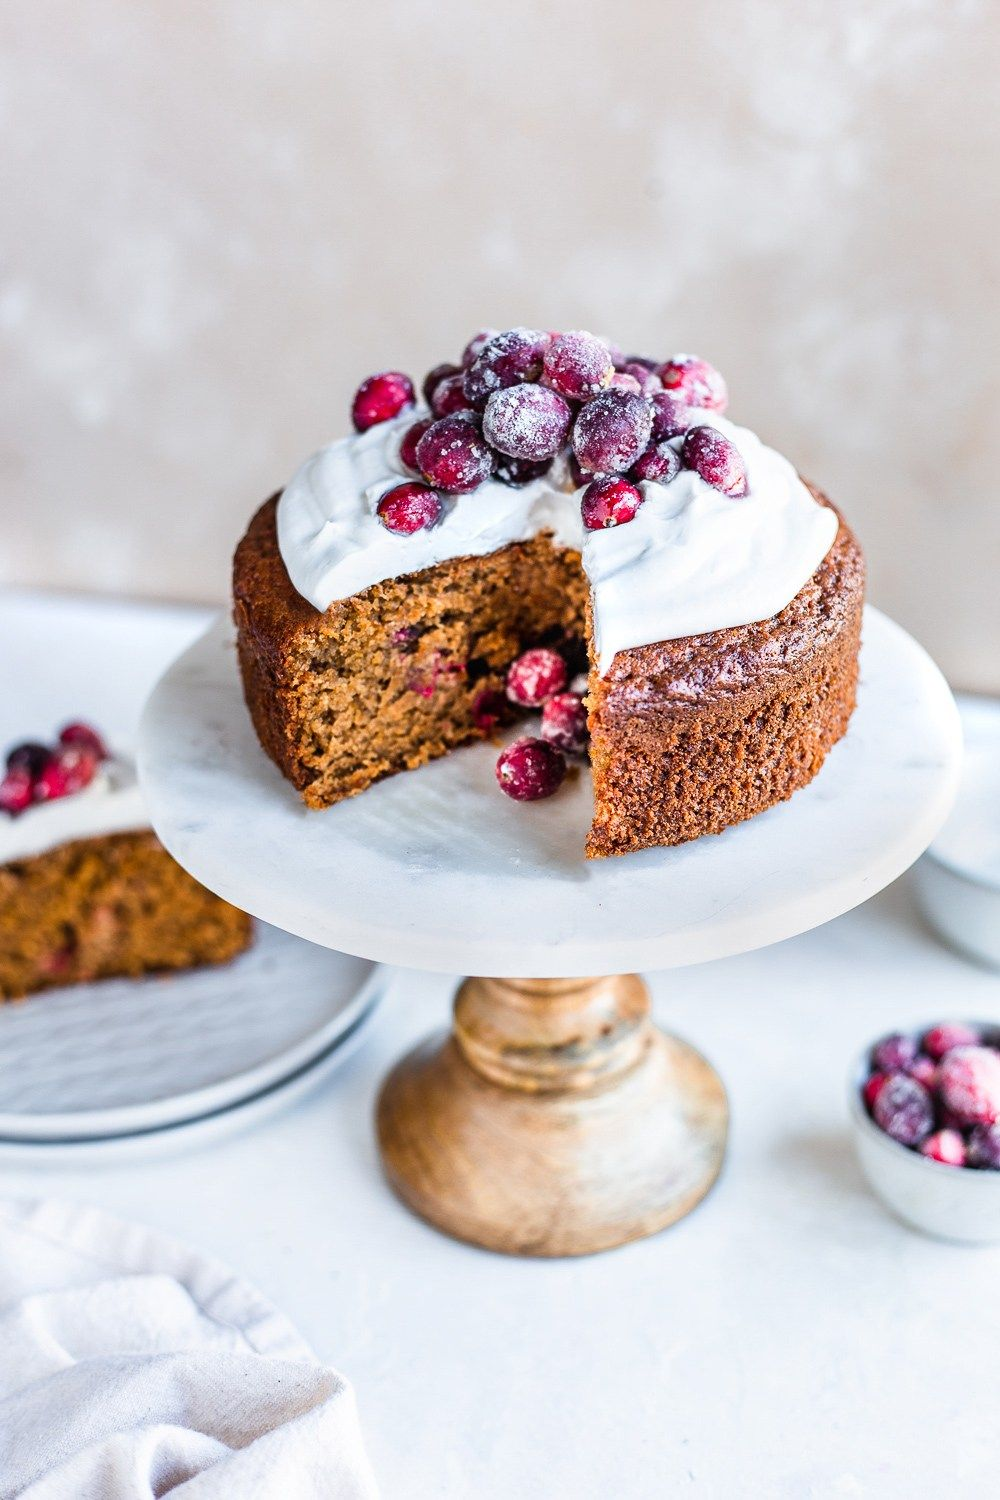 Orange and Almond Cake with Cranberries